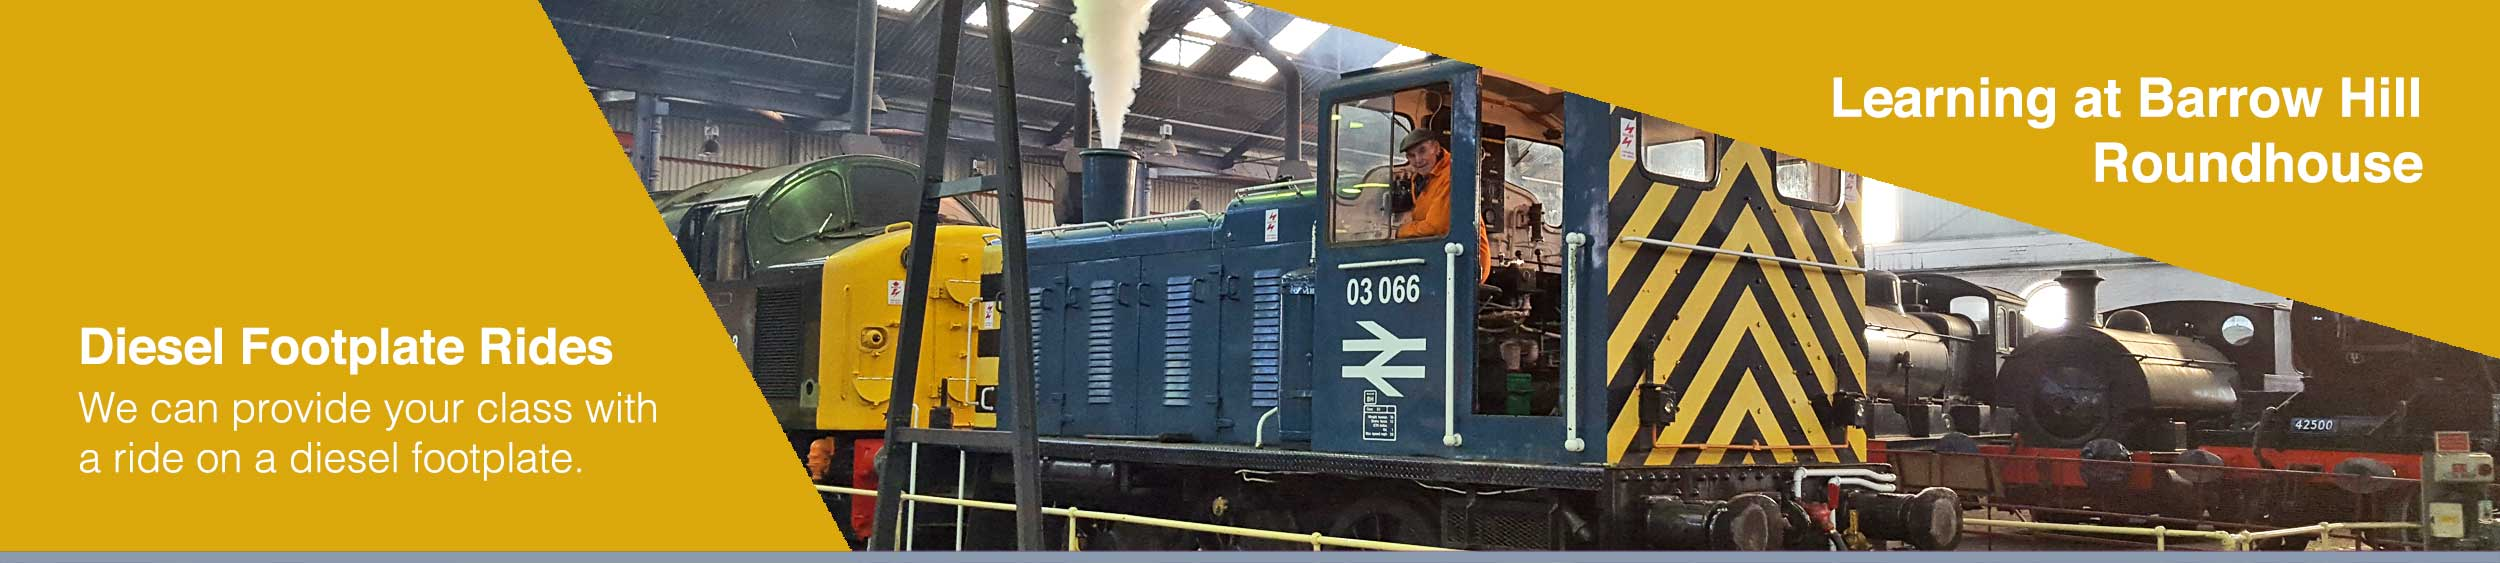 Provide your class with a Diesel Footplate ride during their school trip